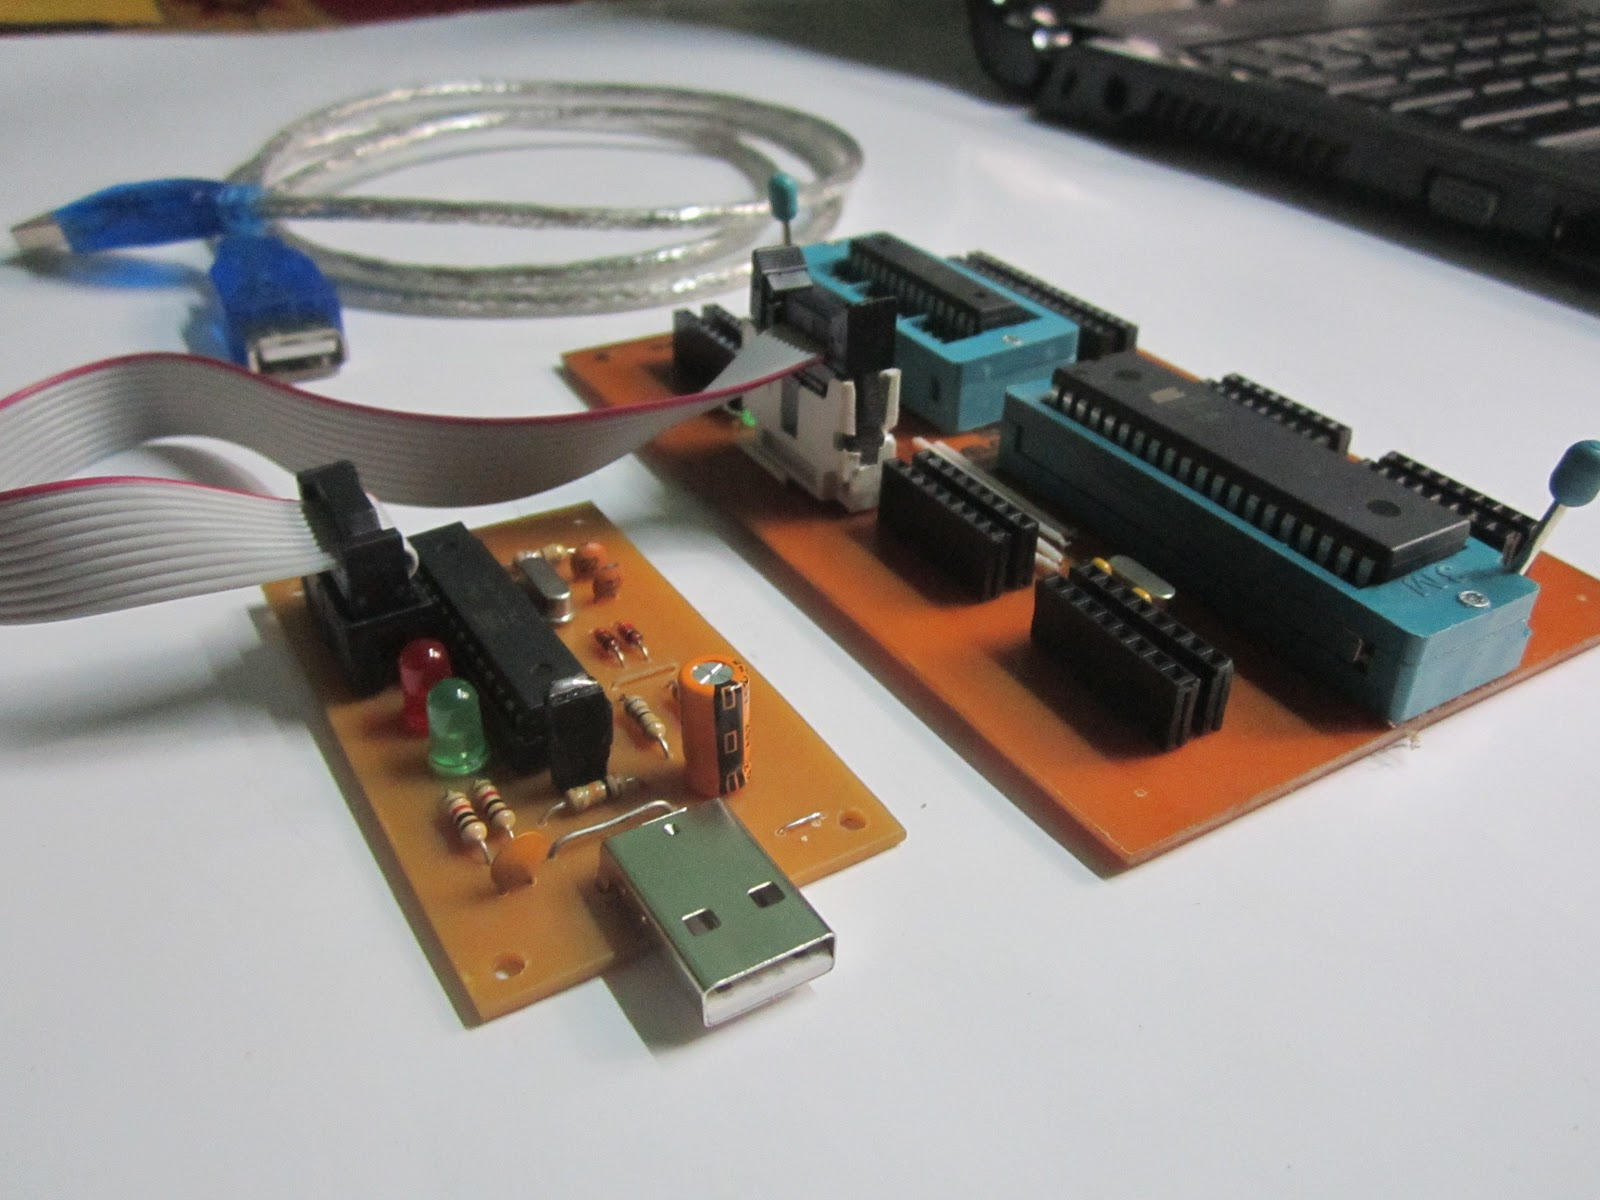 Horizon Of Electronics Usbsap Usbasp Usb Programmer For Atmel Avr Controllers So Hear First I Would Like To Introduce How Build Your Own Microcontrollers